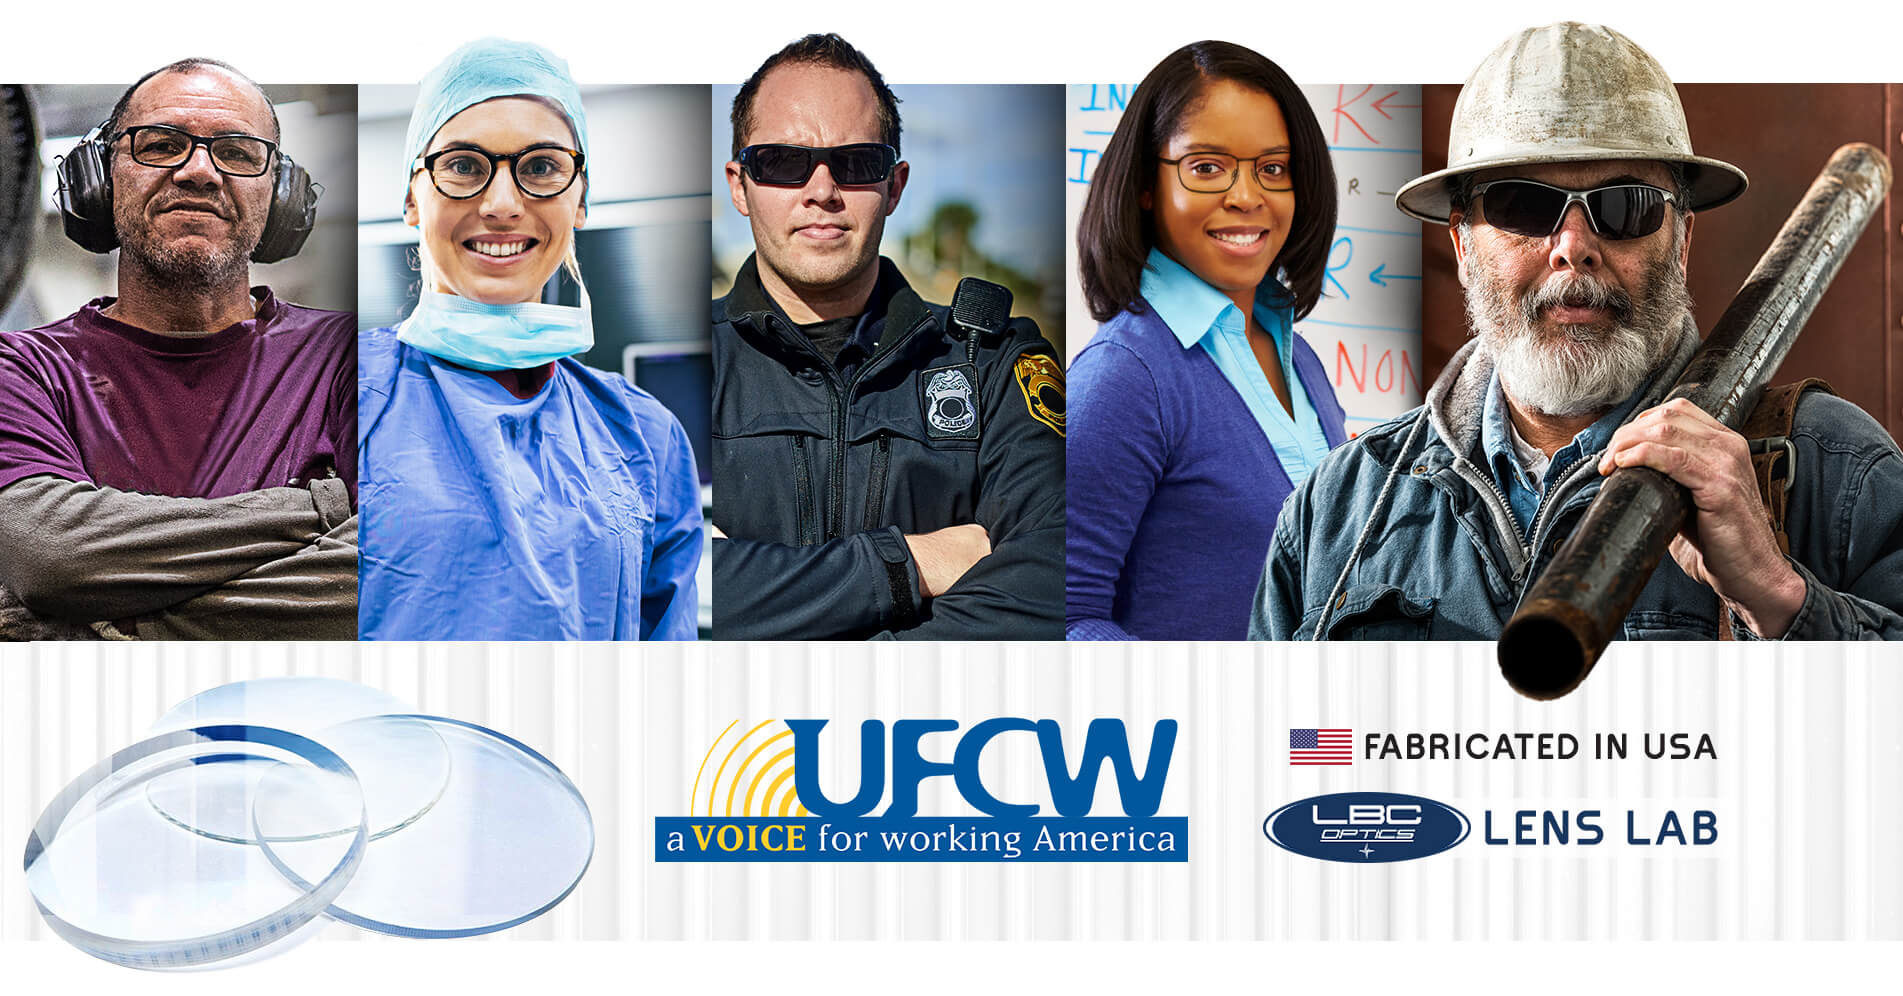 UFCW Made in America Lenses for Prescription Safety Glasses